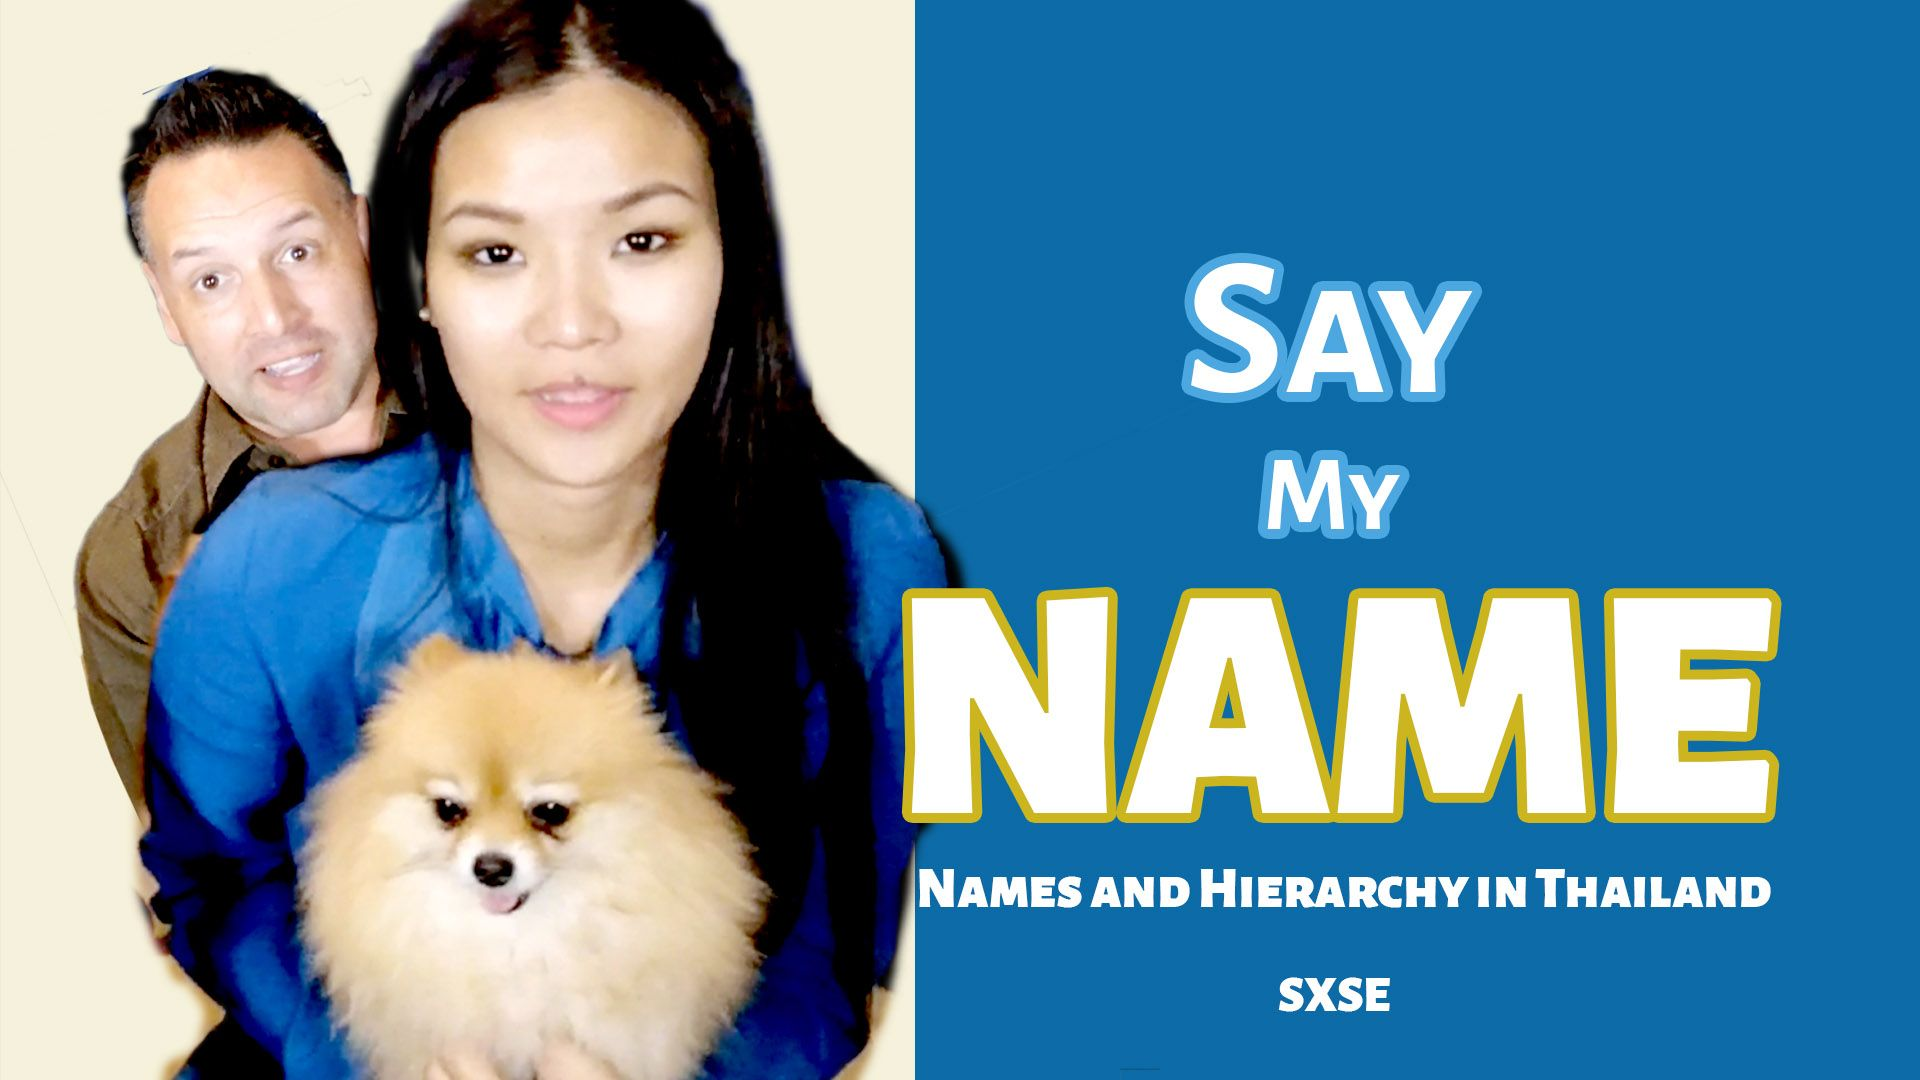 Say My Name - Names and Hierarchy in Thailand - Don't Screw It Up